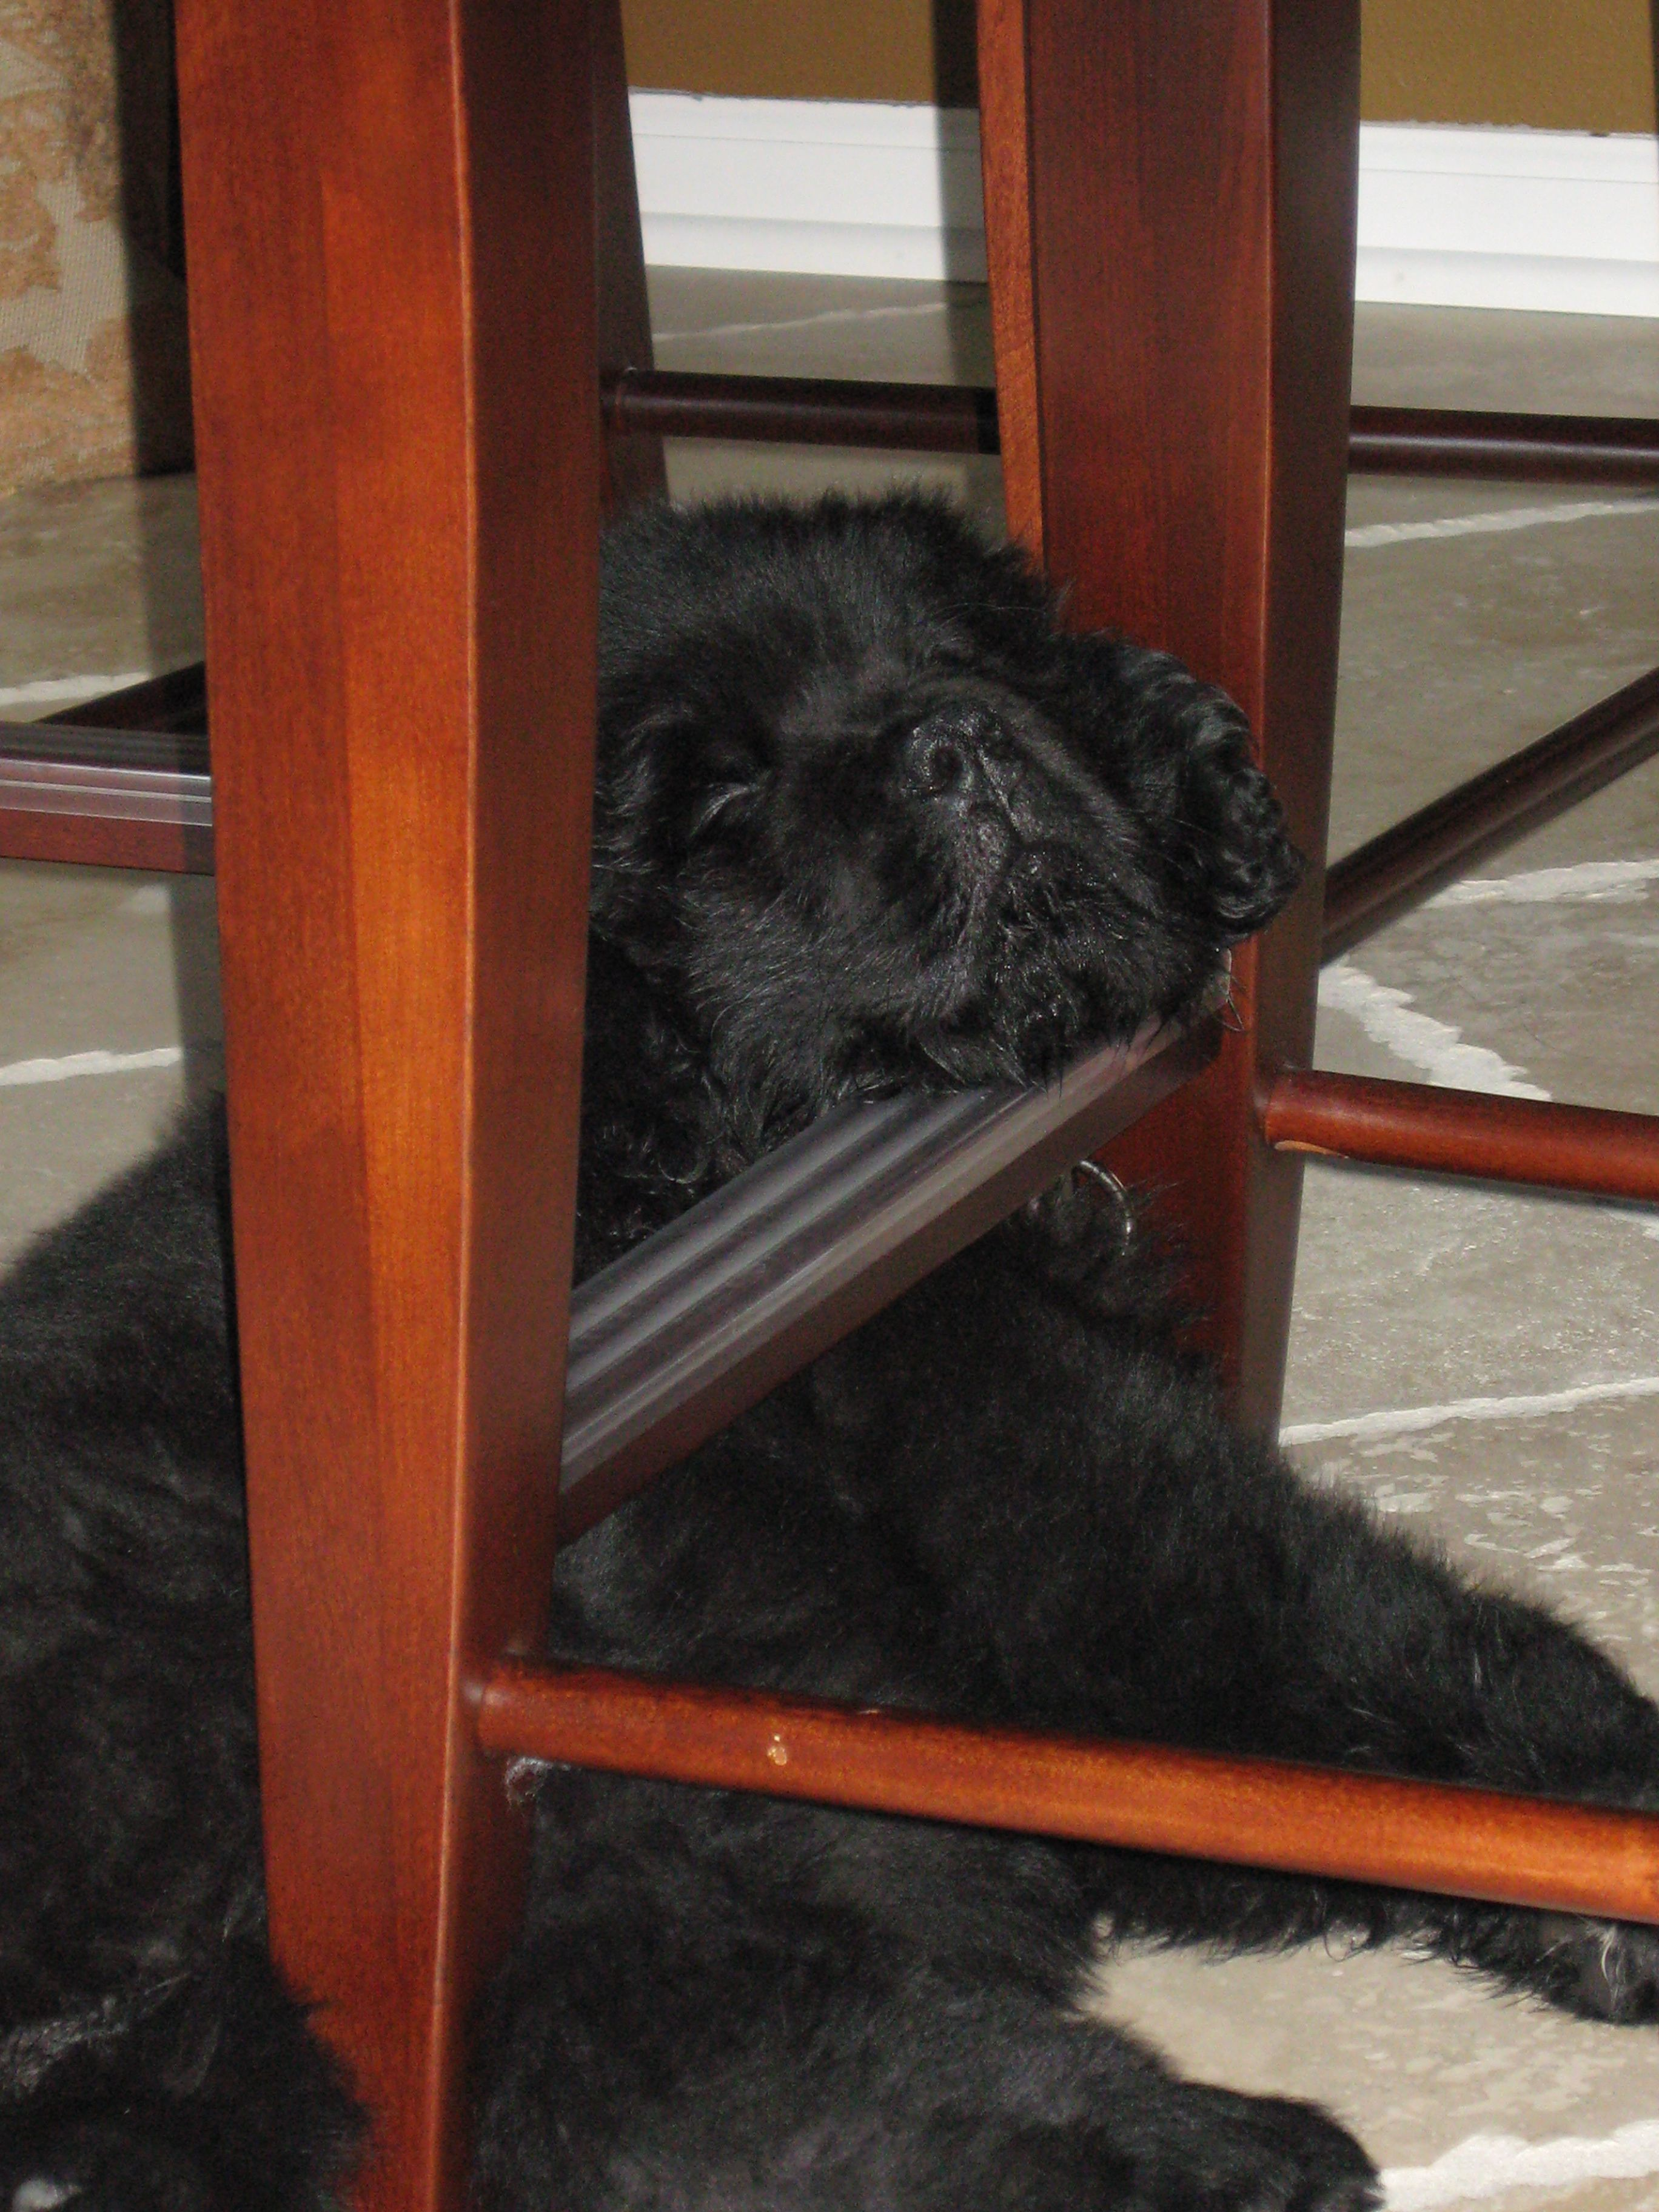 Puppy Newfie.....why do all newfie puppies sleep this way...all of mine did...:) RIP<3 you never leave my heart and soul.